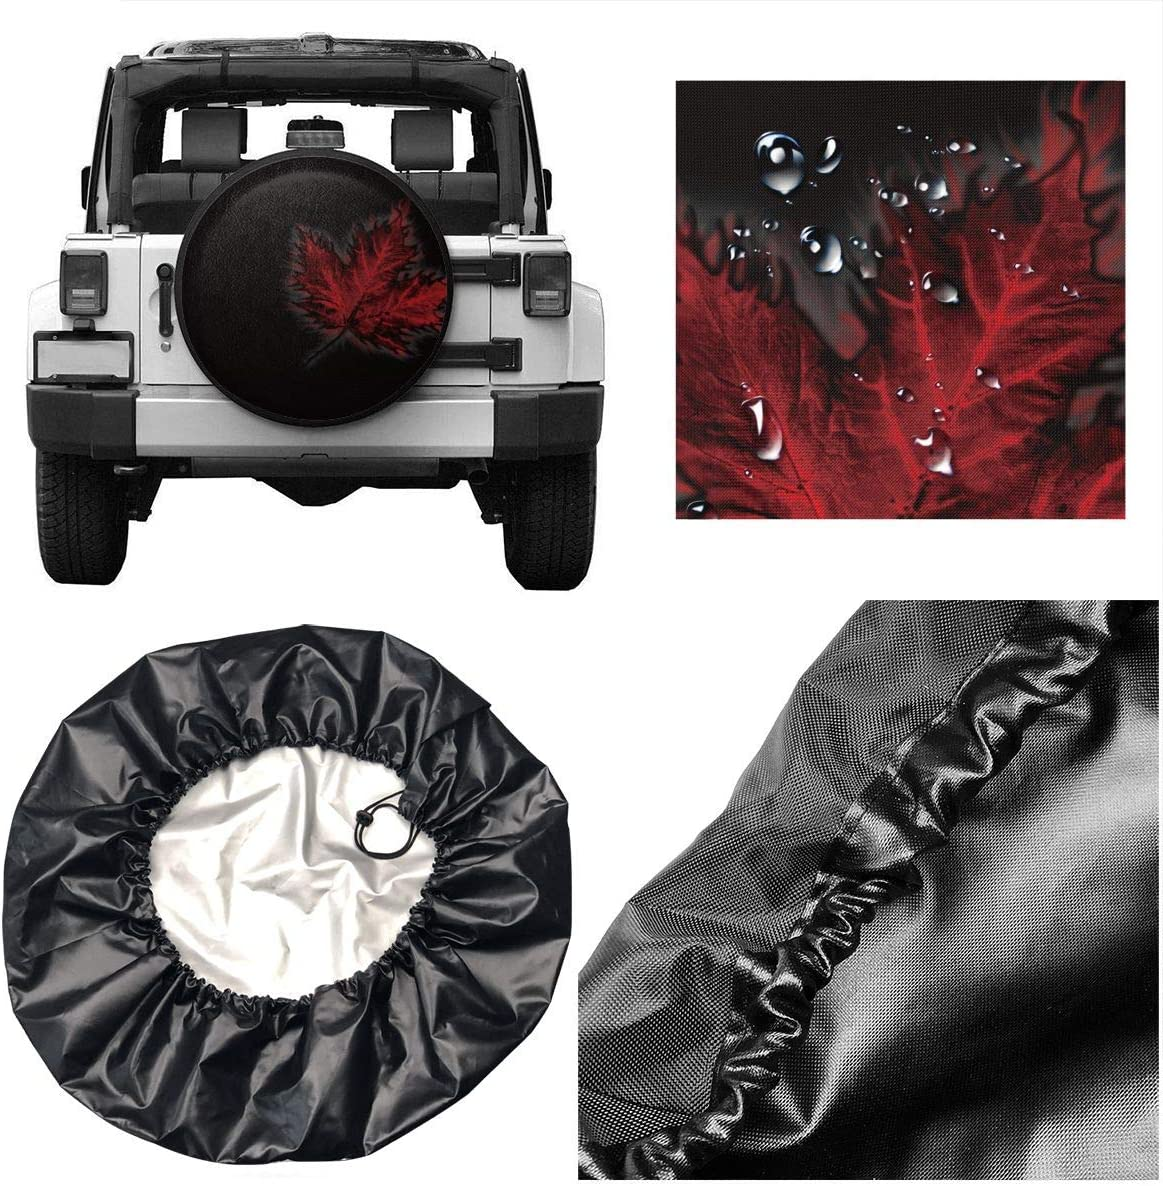 CaLOV Canada Flag Maple Leaf Spare Tire Cover Protector Waterproof Dust-Proof Wheel Covers Fit for Jeep Liberty Rv SUV Camper Travel Trailer Accessories 14 15 16 17